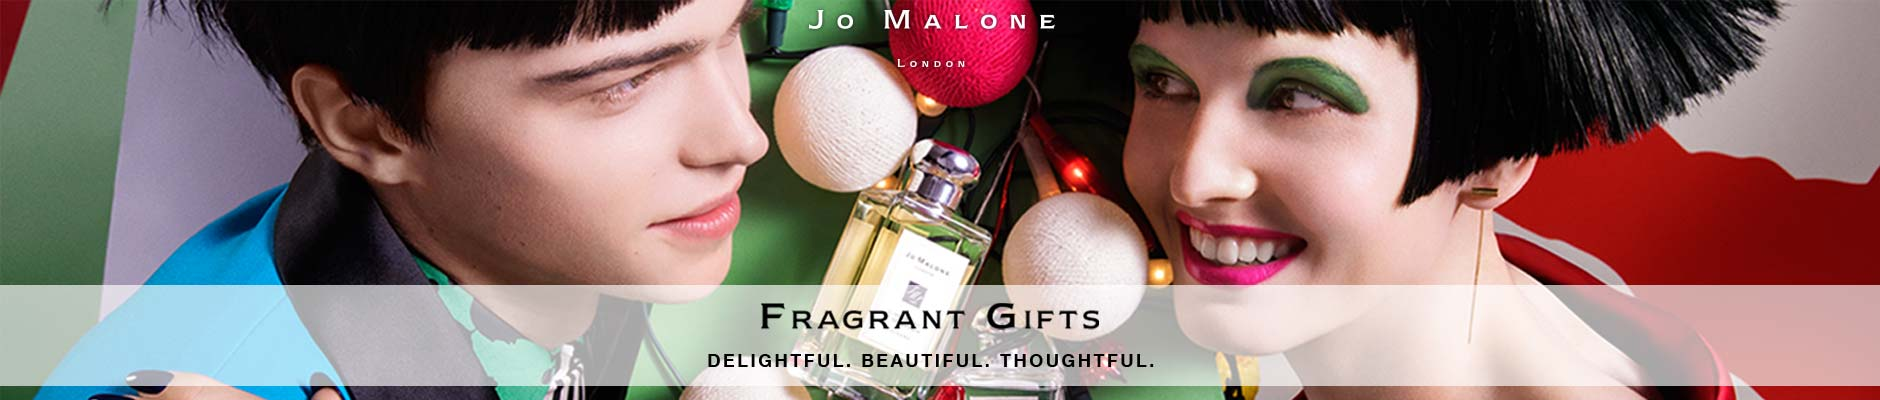 Jo Malone - Fragrant gifts. delightful. beautiful. thoughtful.